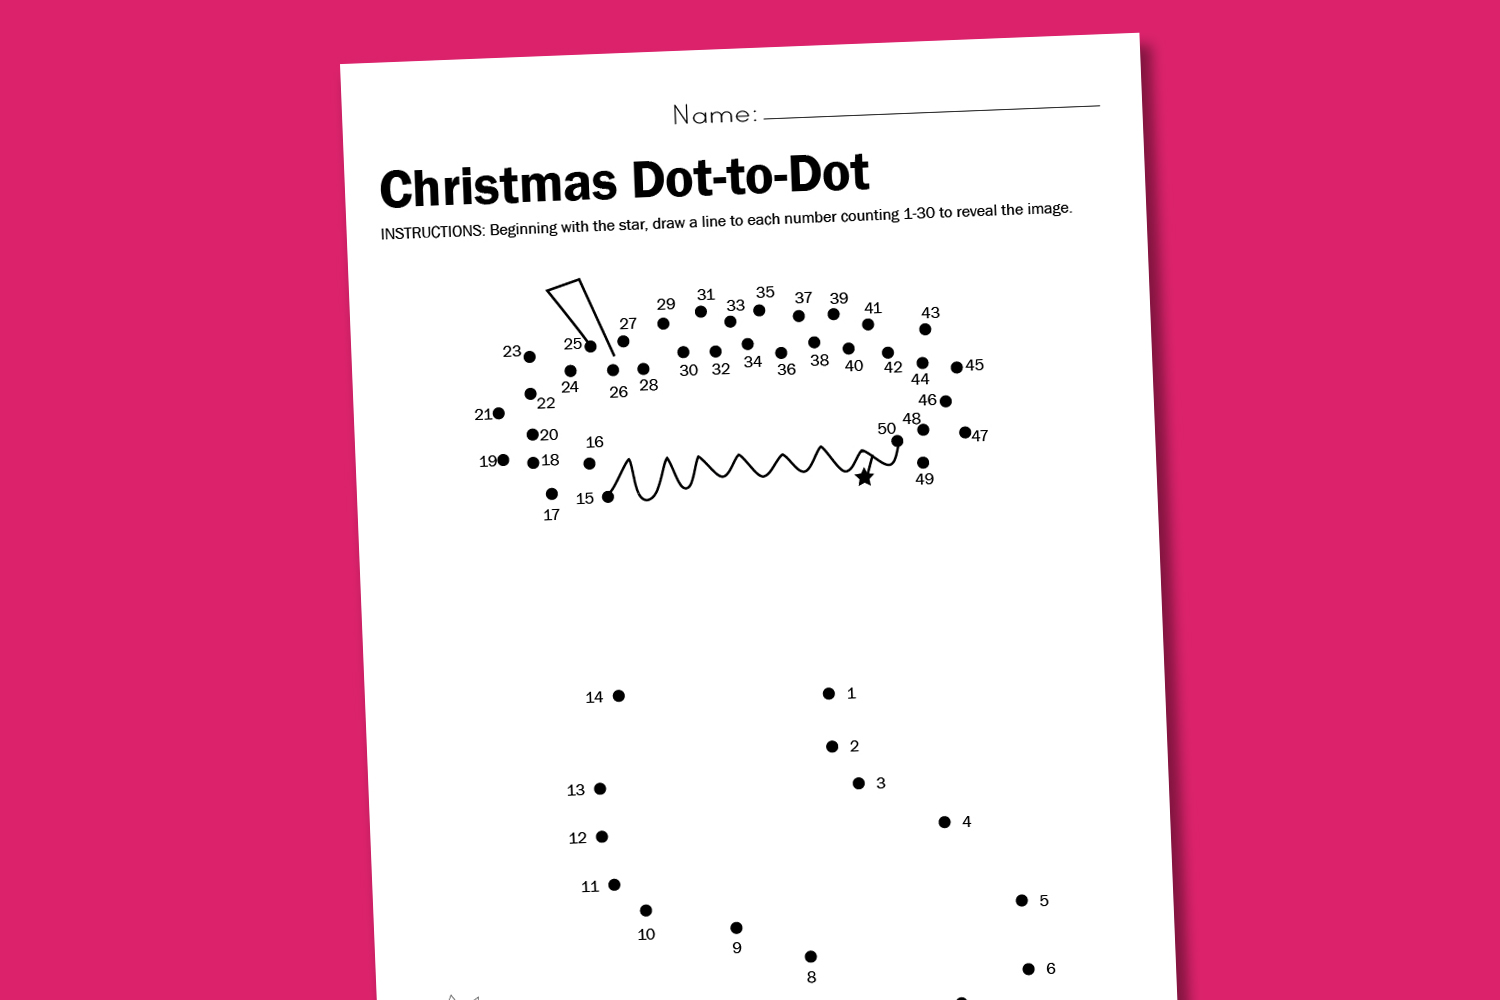 Worksheet Wednesday Christmas Dot To Dot